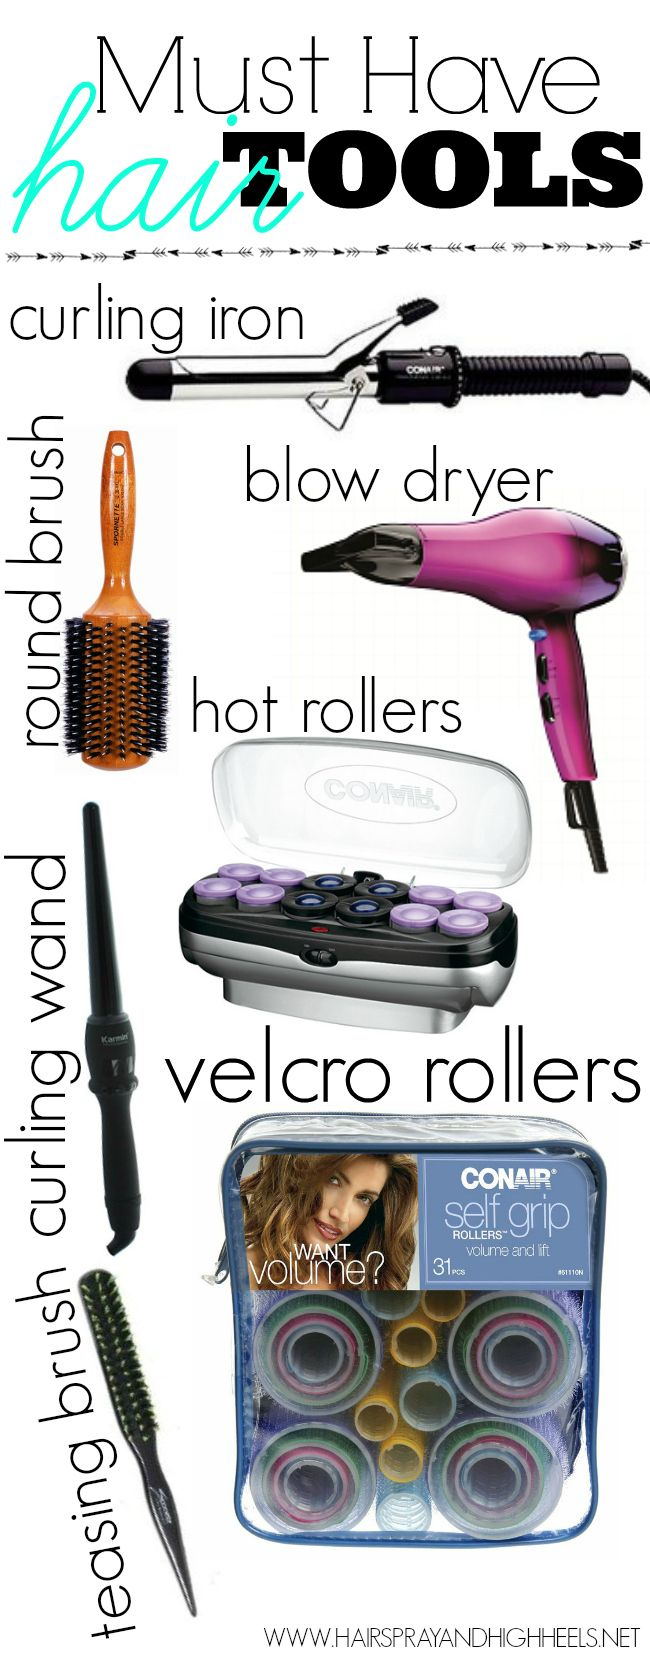 Must Have Hair Tools...have everything except the Velcro rollers...they do not work on my hair at all!